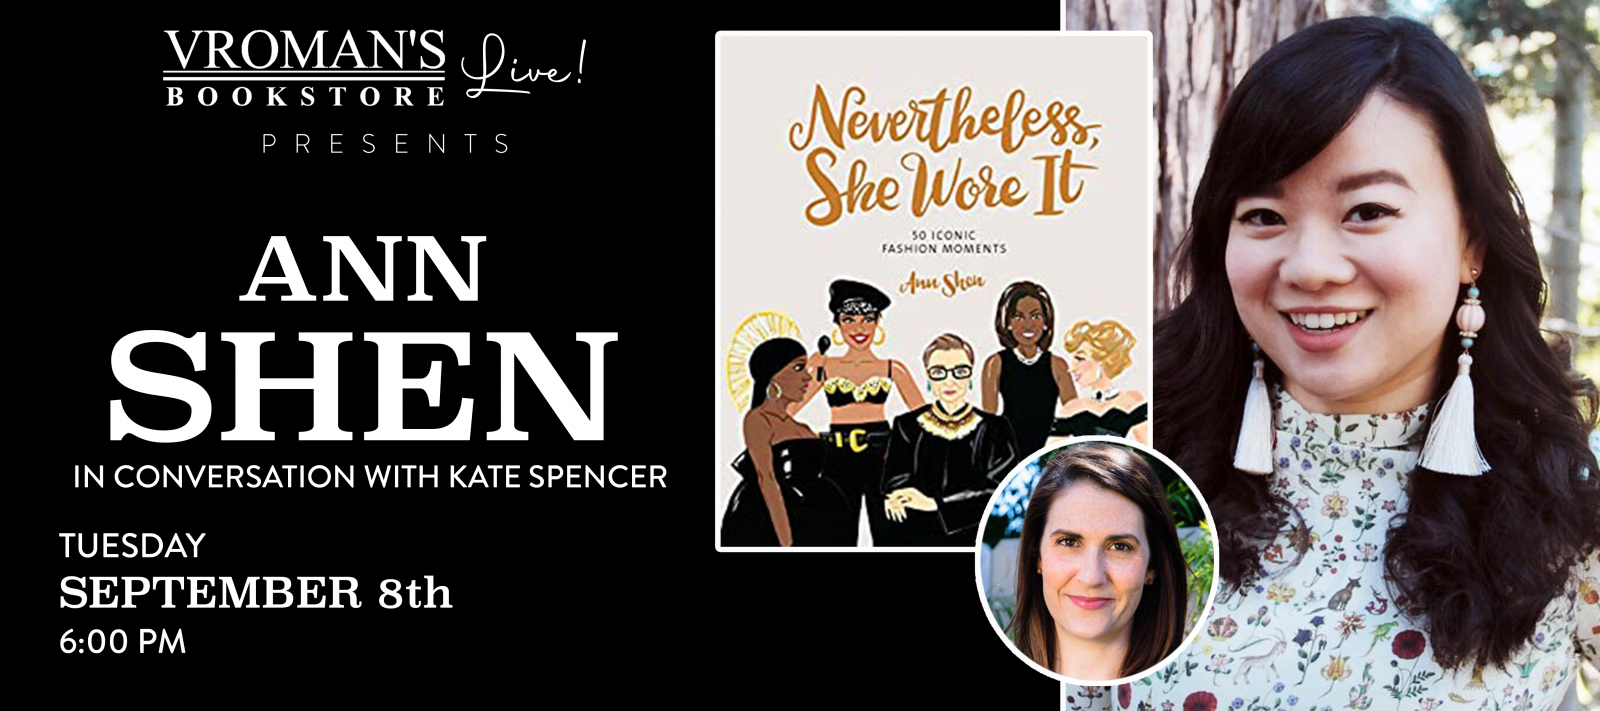 Vroman's LIve presents Ann Shen, in conversation with Kate Spencer, on Tuesday September 8th at 6pm